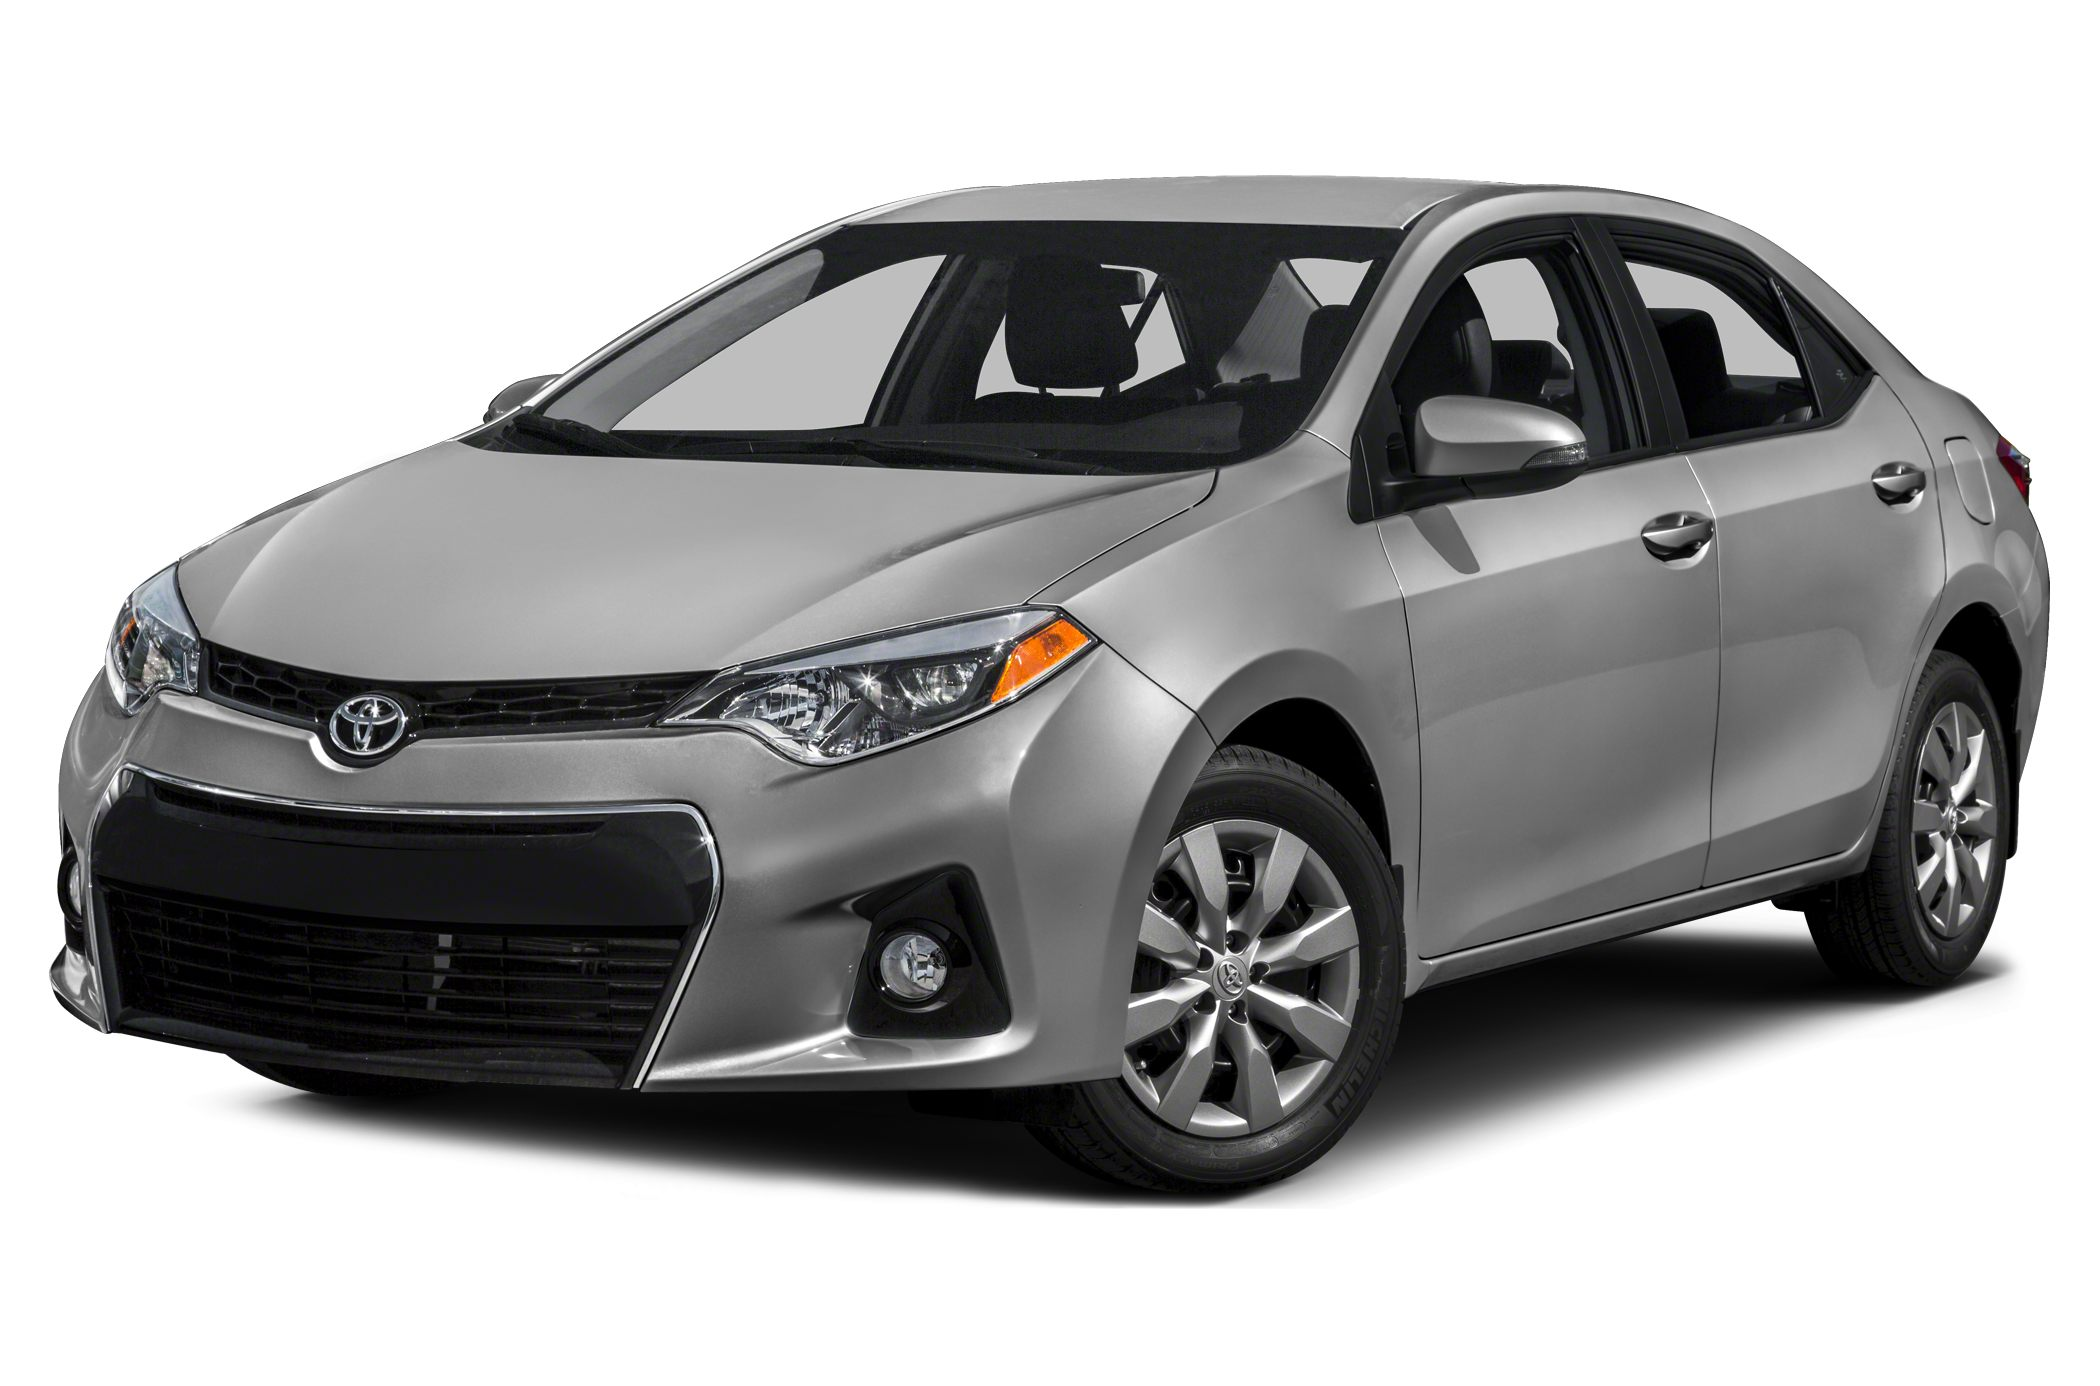 2015 Toyota Corolla S Plus Sedan for sale in Springfield for $17,588 with 0 miles.